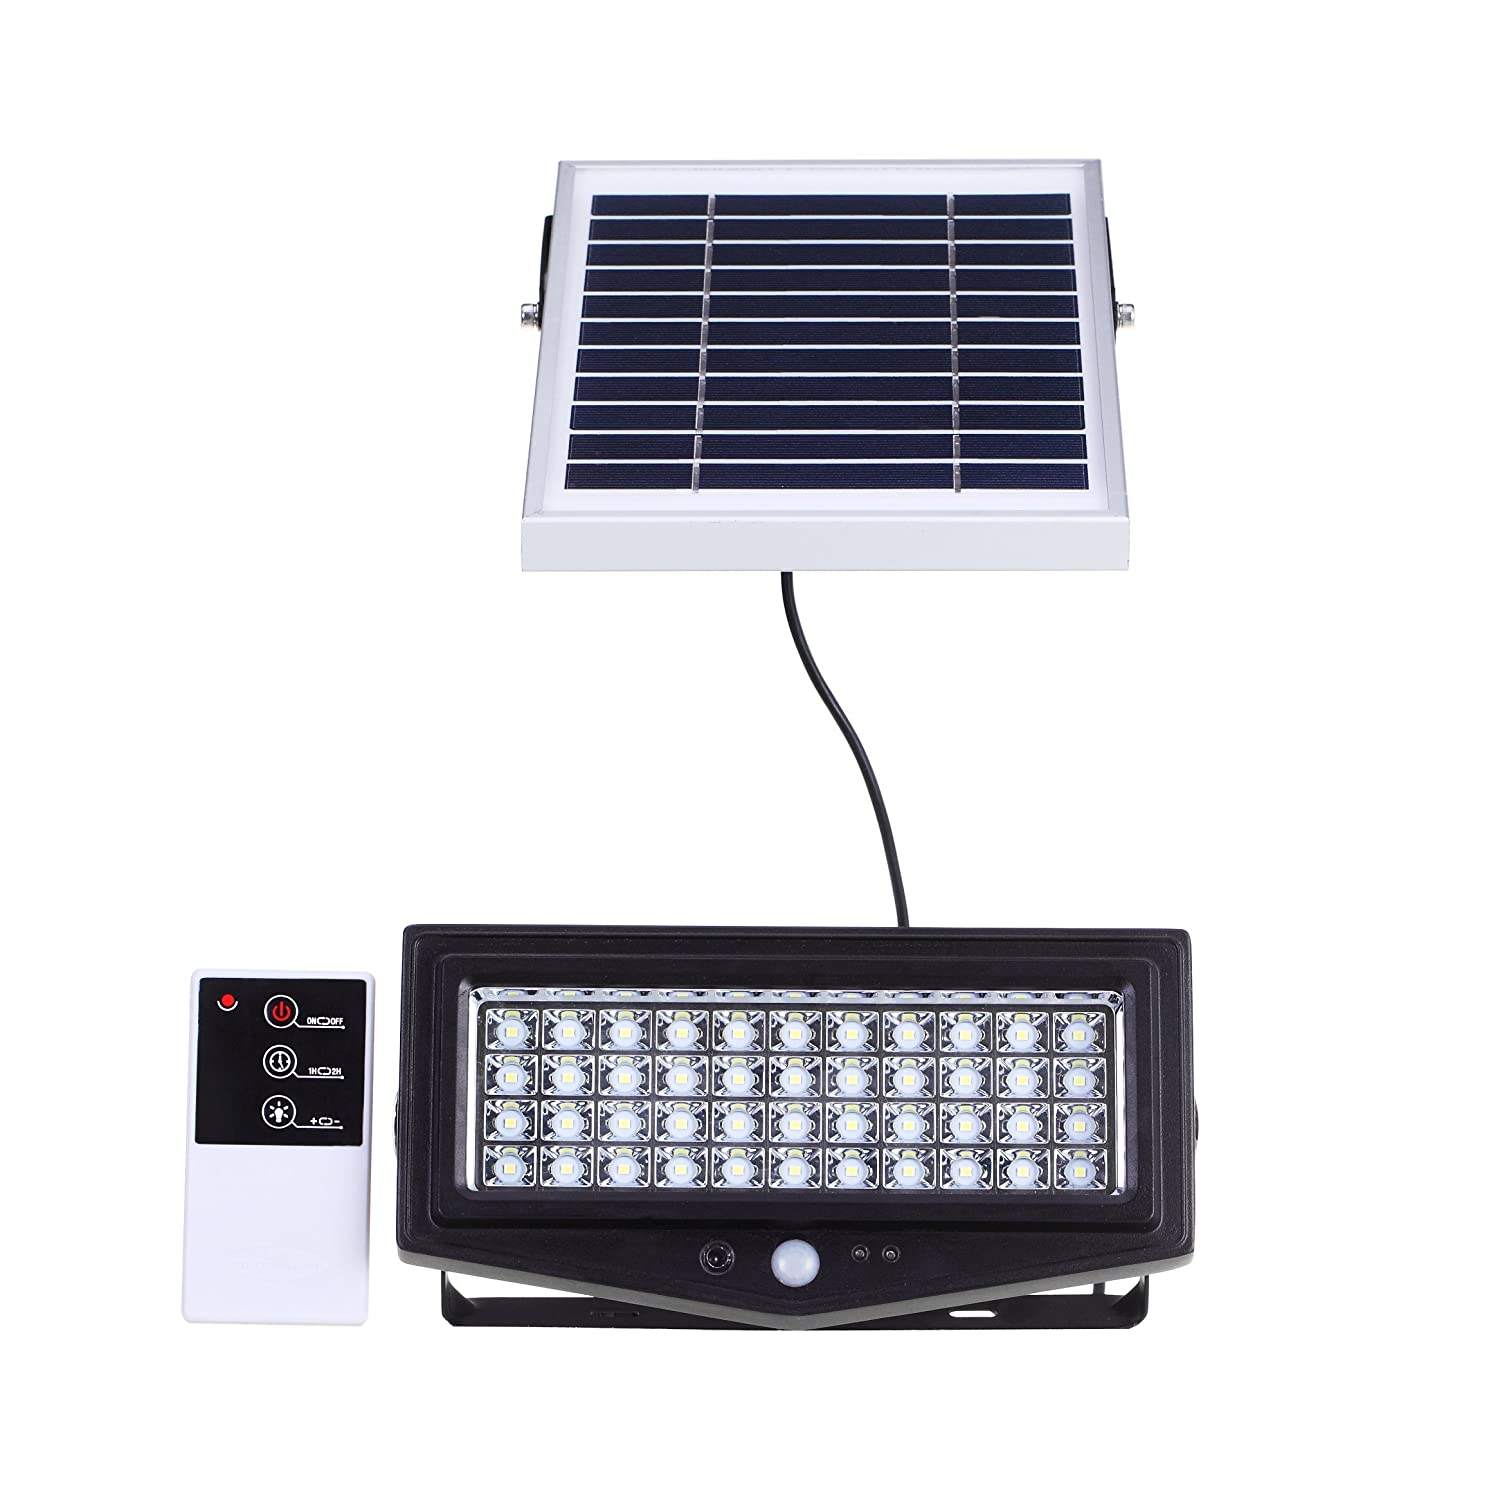 Solar Security Light 44 LED Outdoor Indoor Flood Light with Motion Sensor and Remote Control, 1,000 Lumen. 8,000mah Li-Ion Battery by Smart Purchase Co.